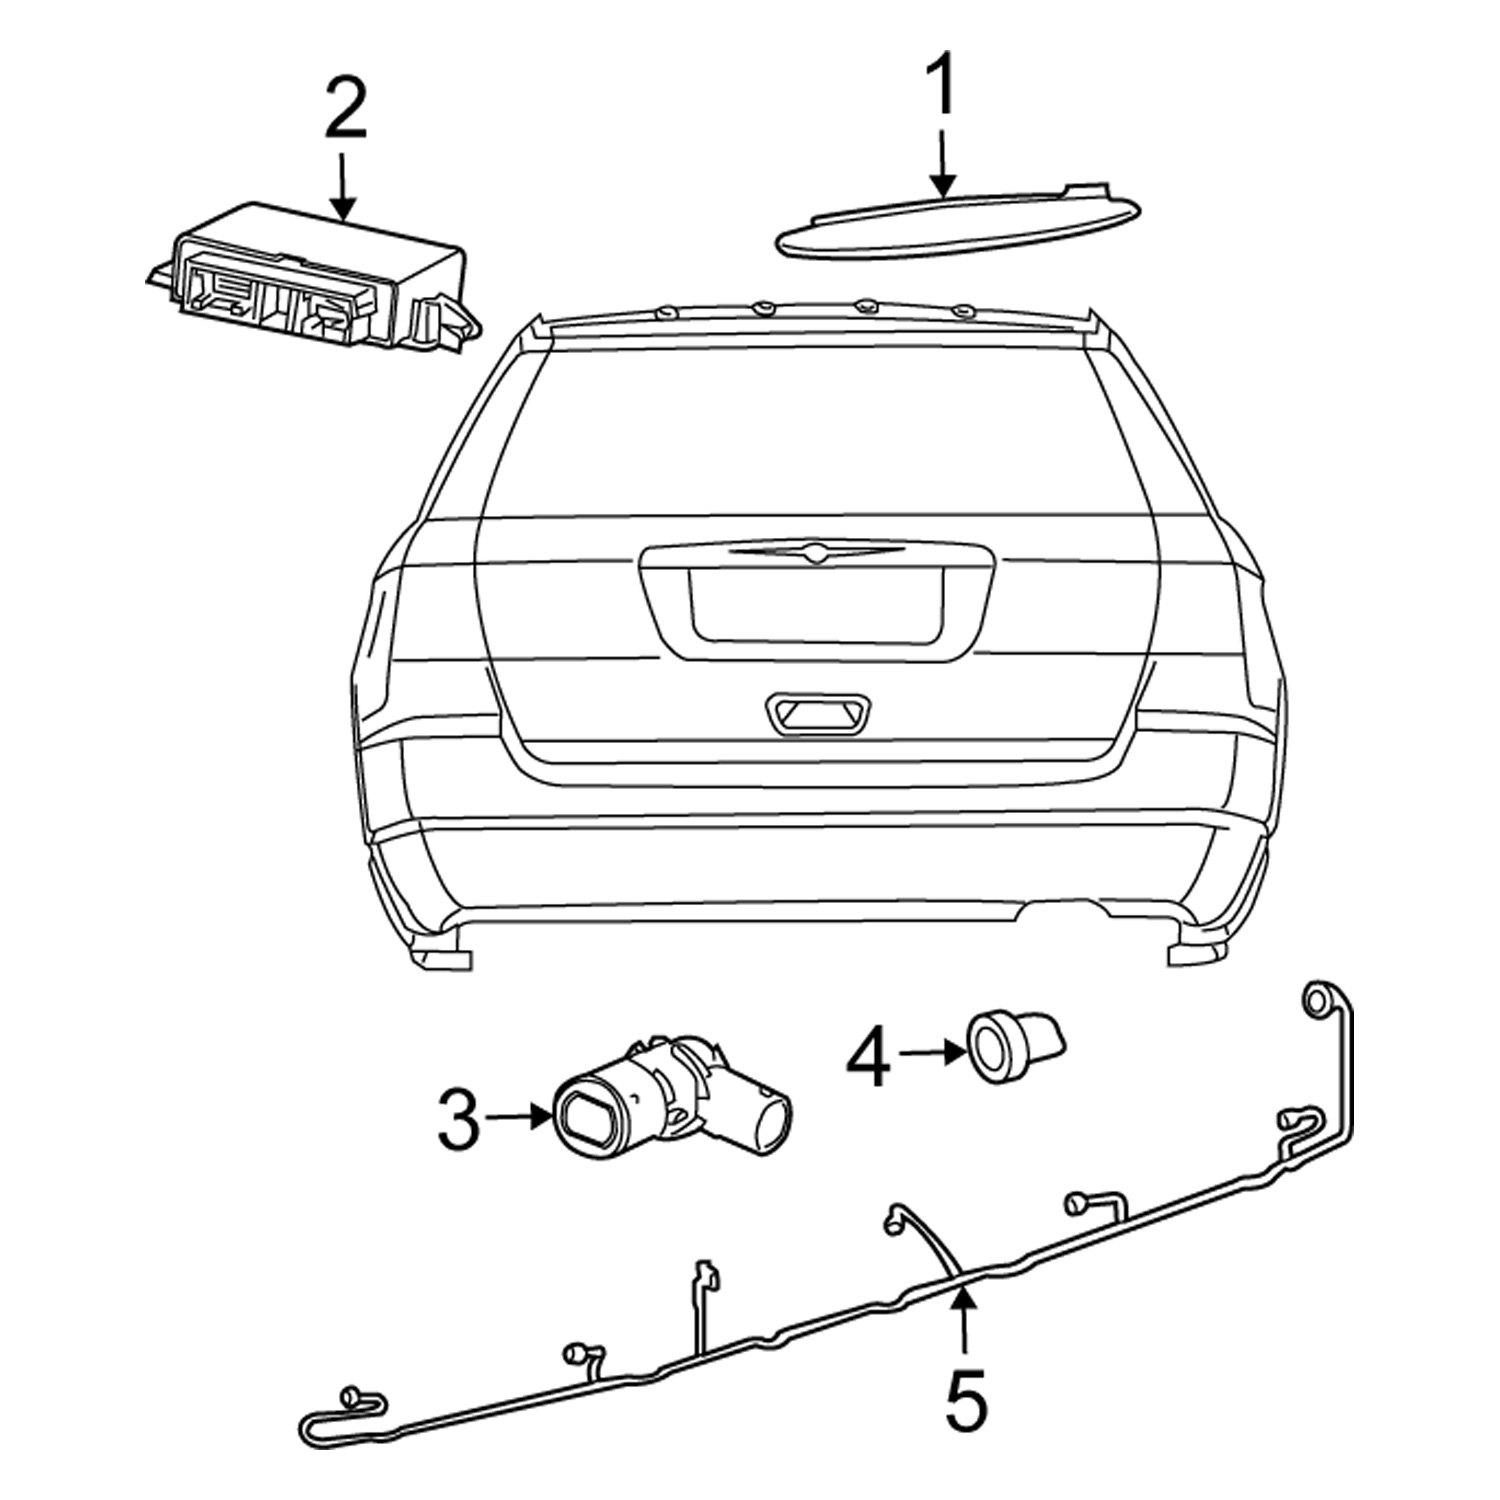 Chrysler OE 5113114AE - Rear Parking Aid System Wiring Harness [ 1500 x 1500 Pixel ]